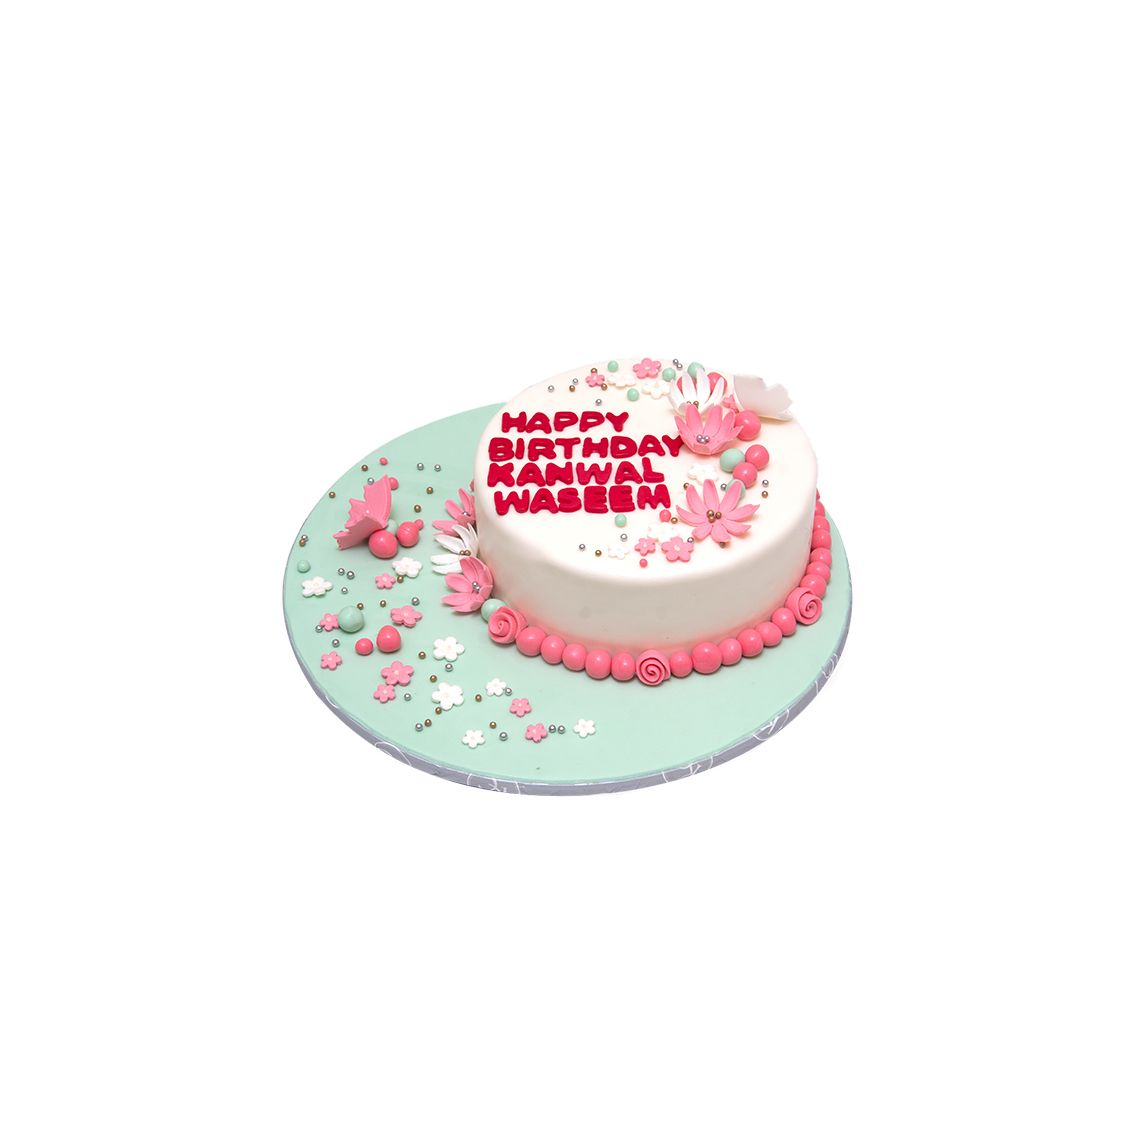 Kitchen Cuisine Default Category Pink & White Floral Cake